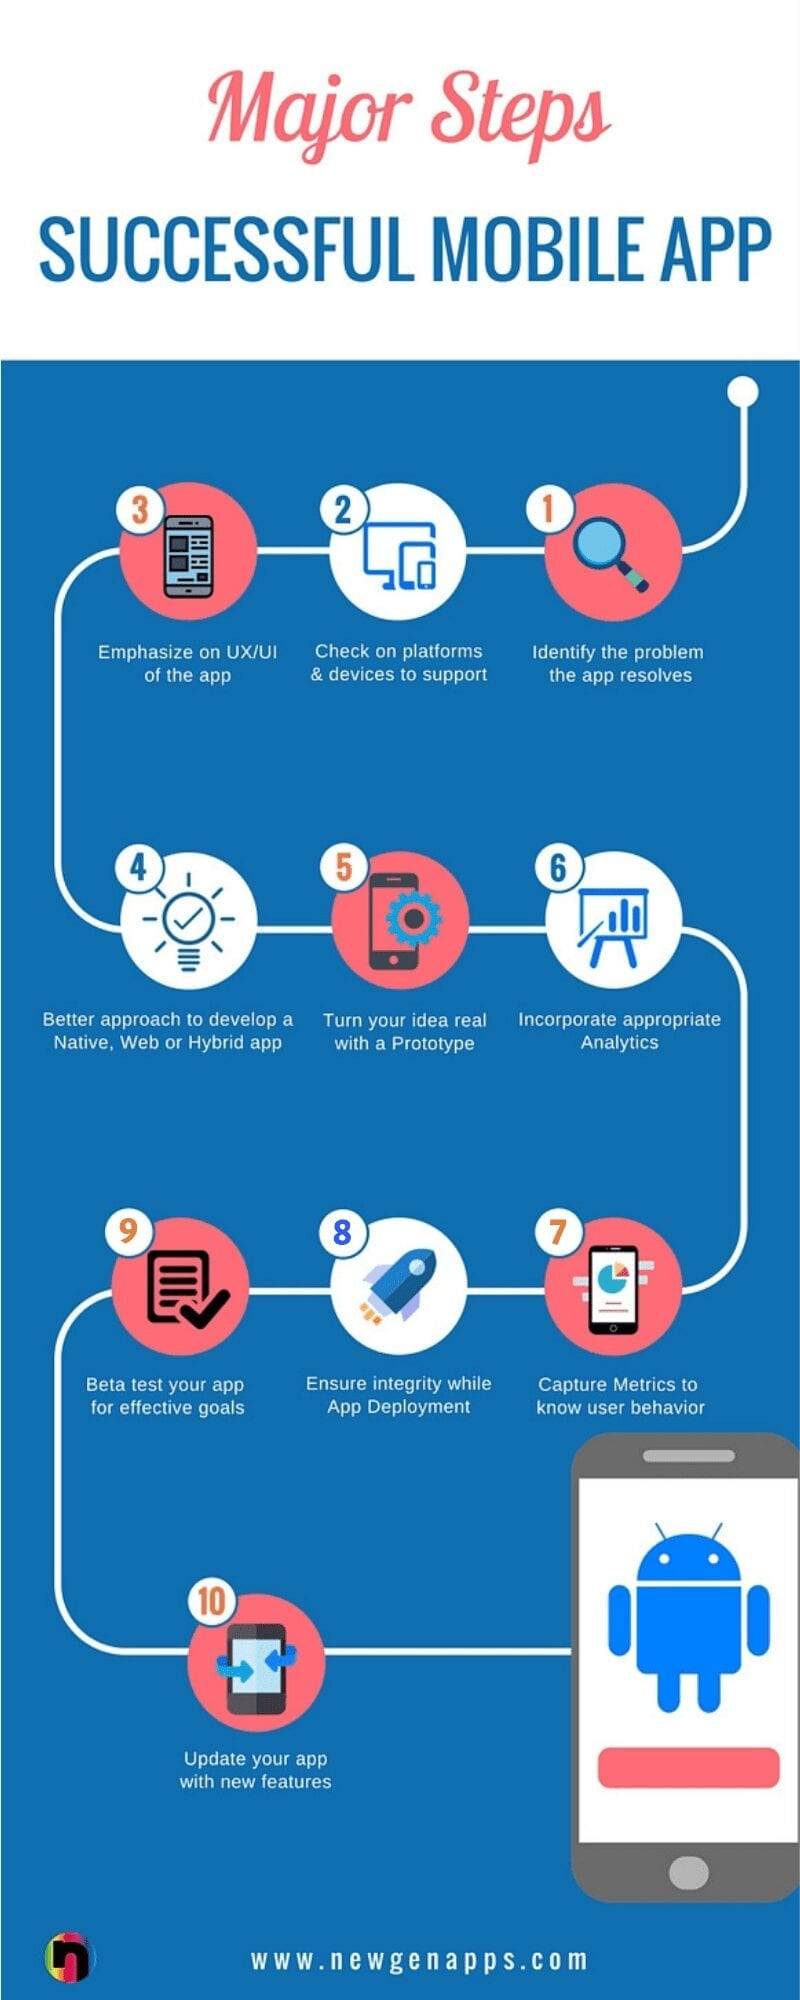 Steps to follow for a successful mobile app